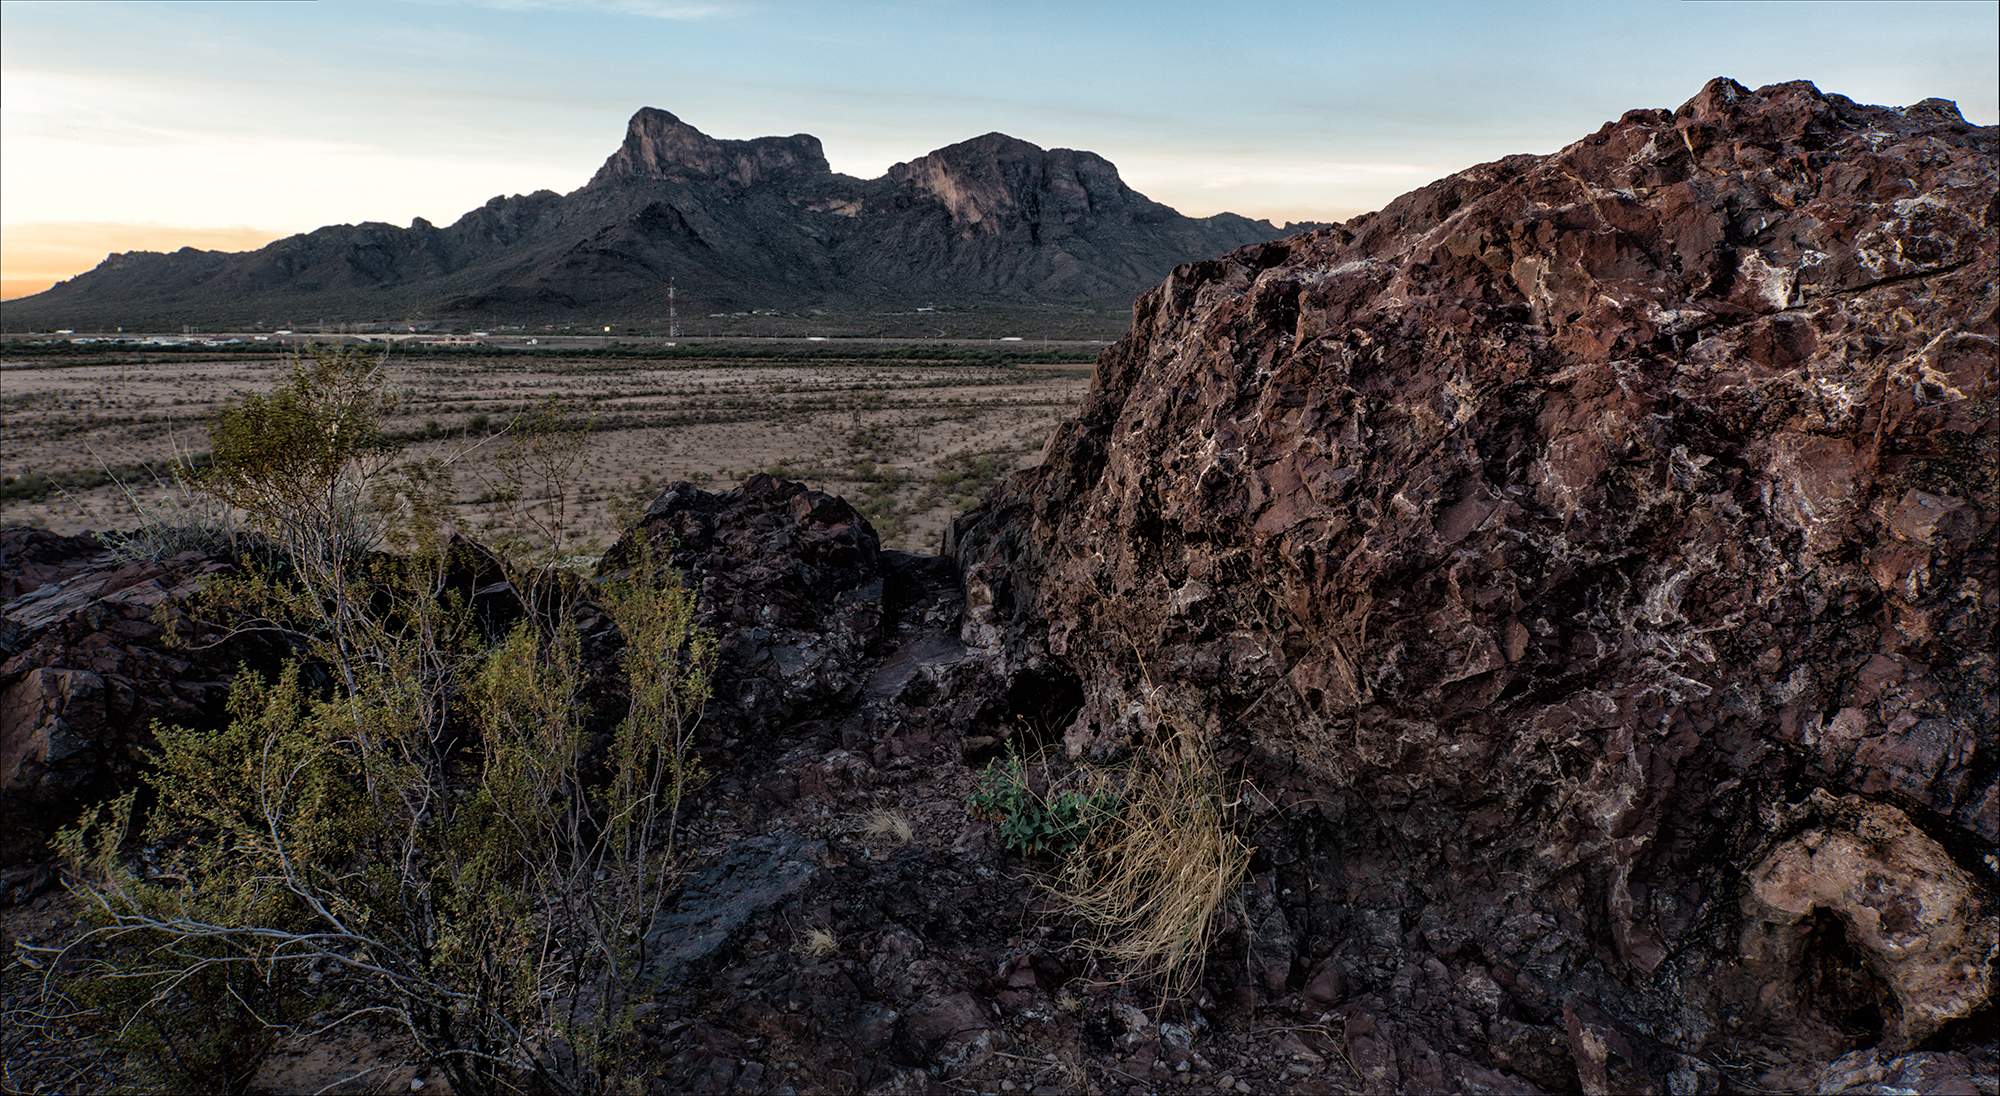 Picacho Peak View. Picacho Peak, Arizona, 2016